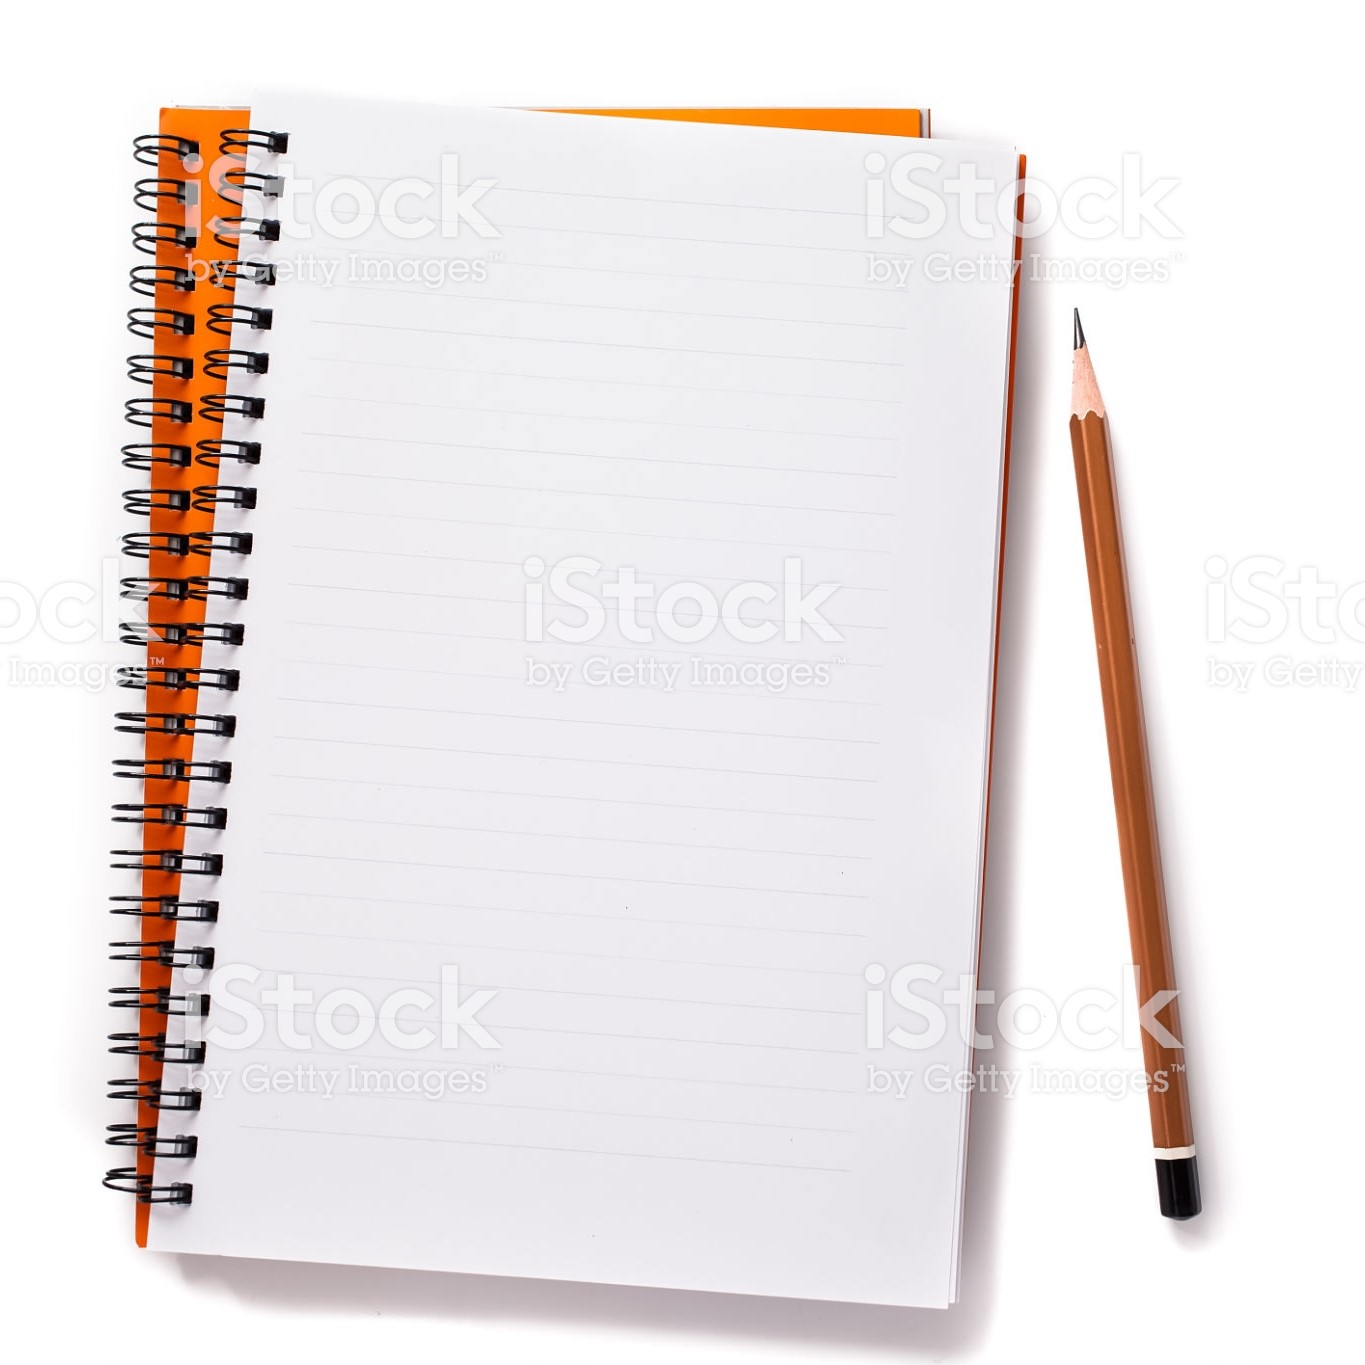 Bound notebook open to a blank page with pencil